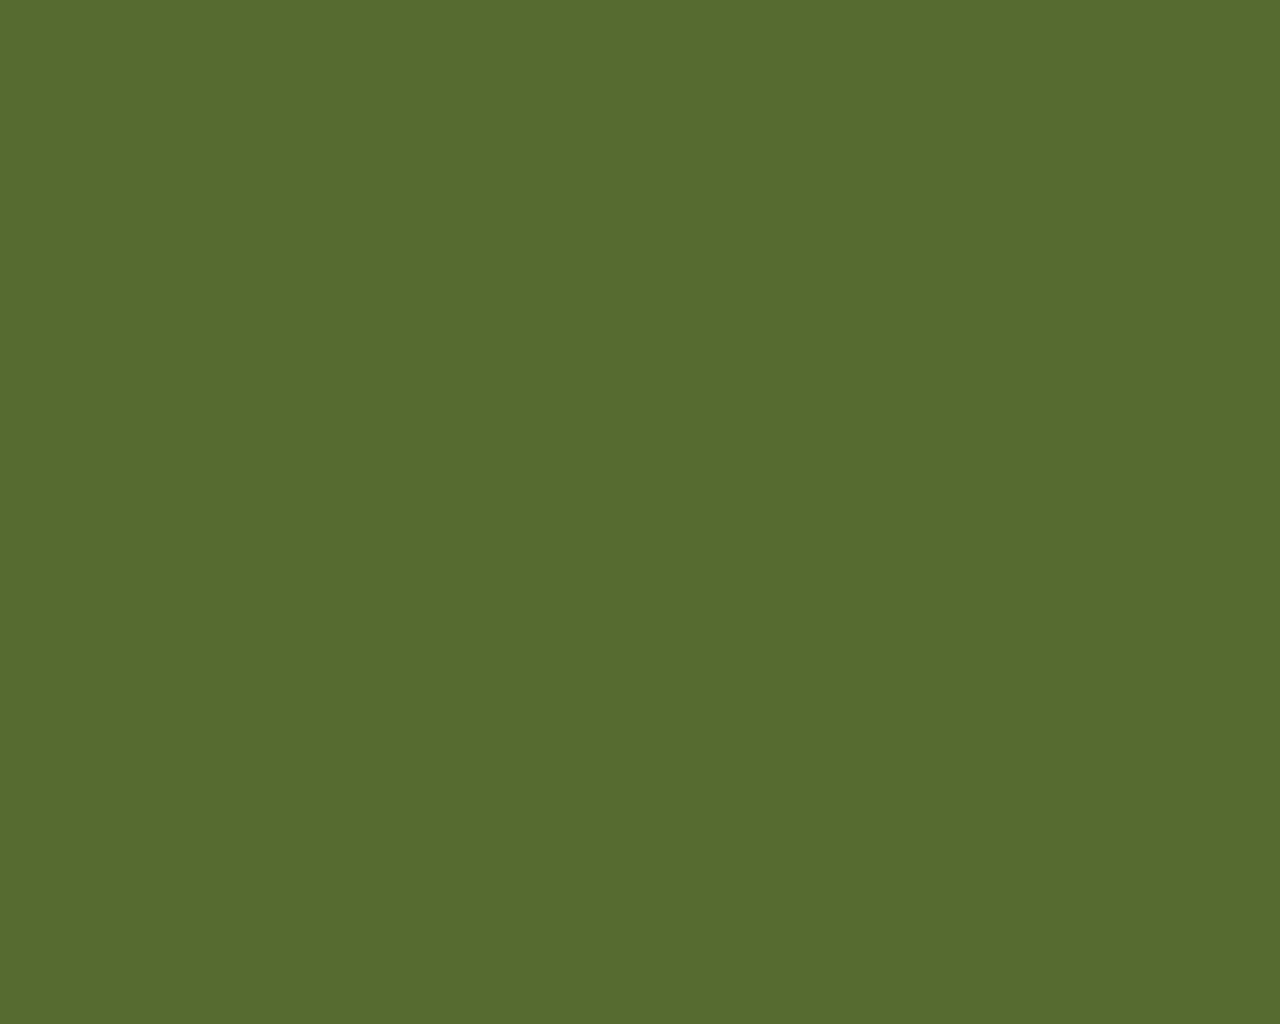 Color your World Olive green nowathome 1280x1024